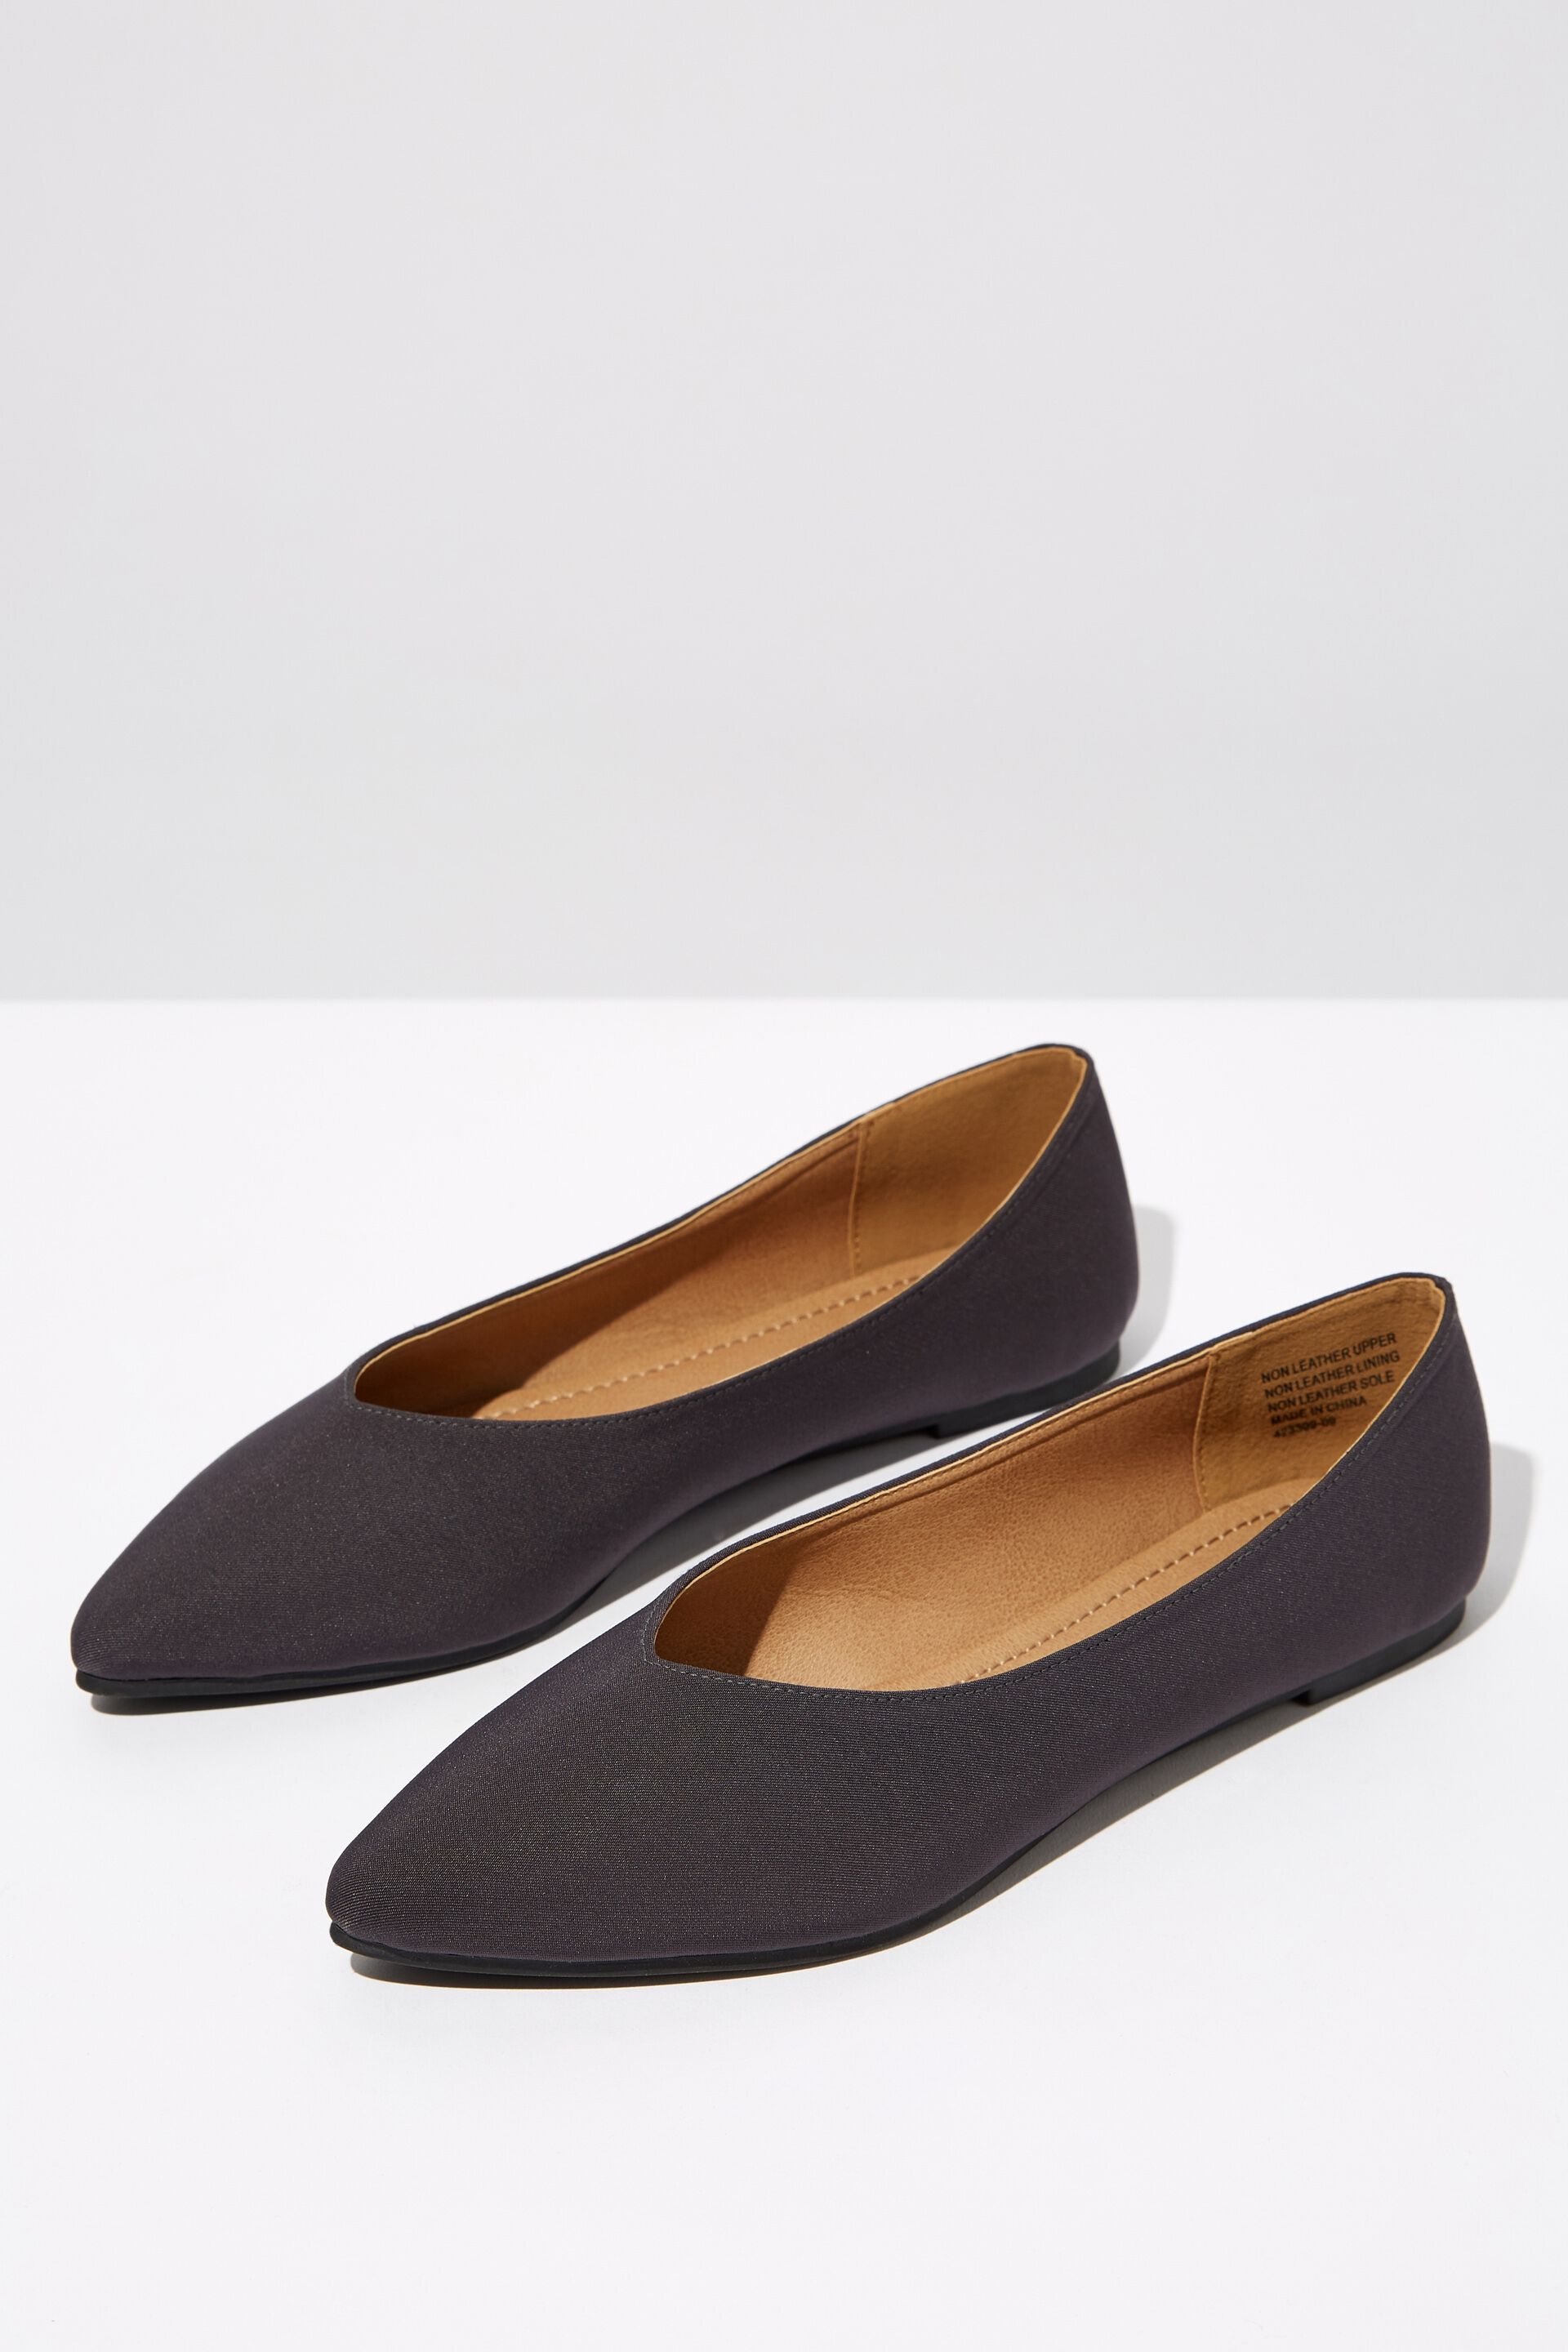 Women's On Mulecotton Eh29di Shoesloafersamp; Flat rCexBod